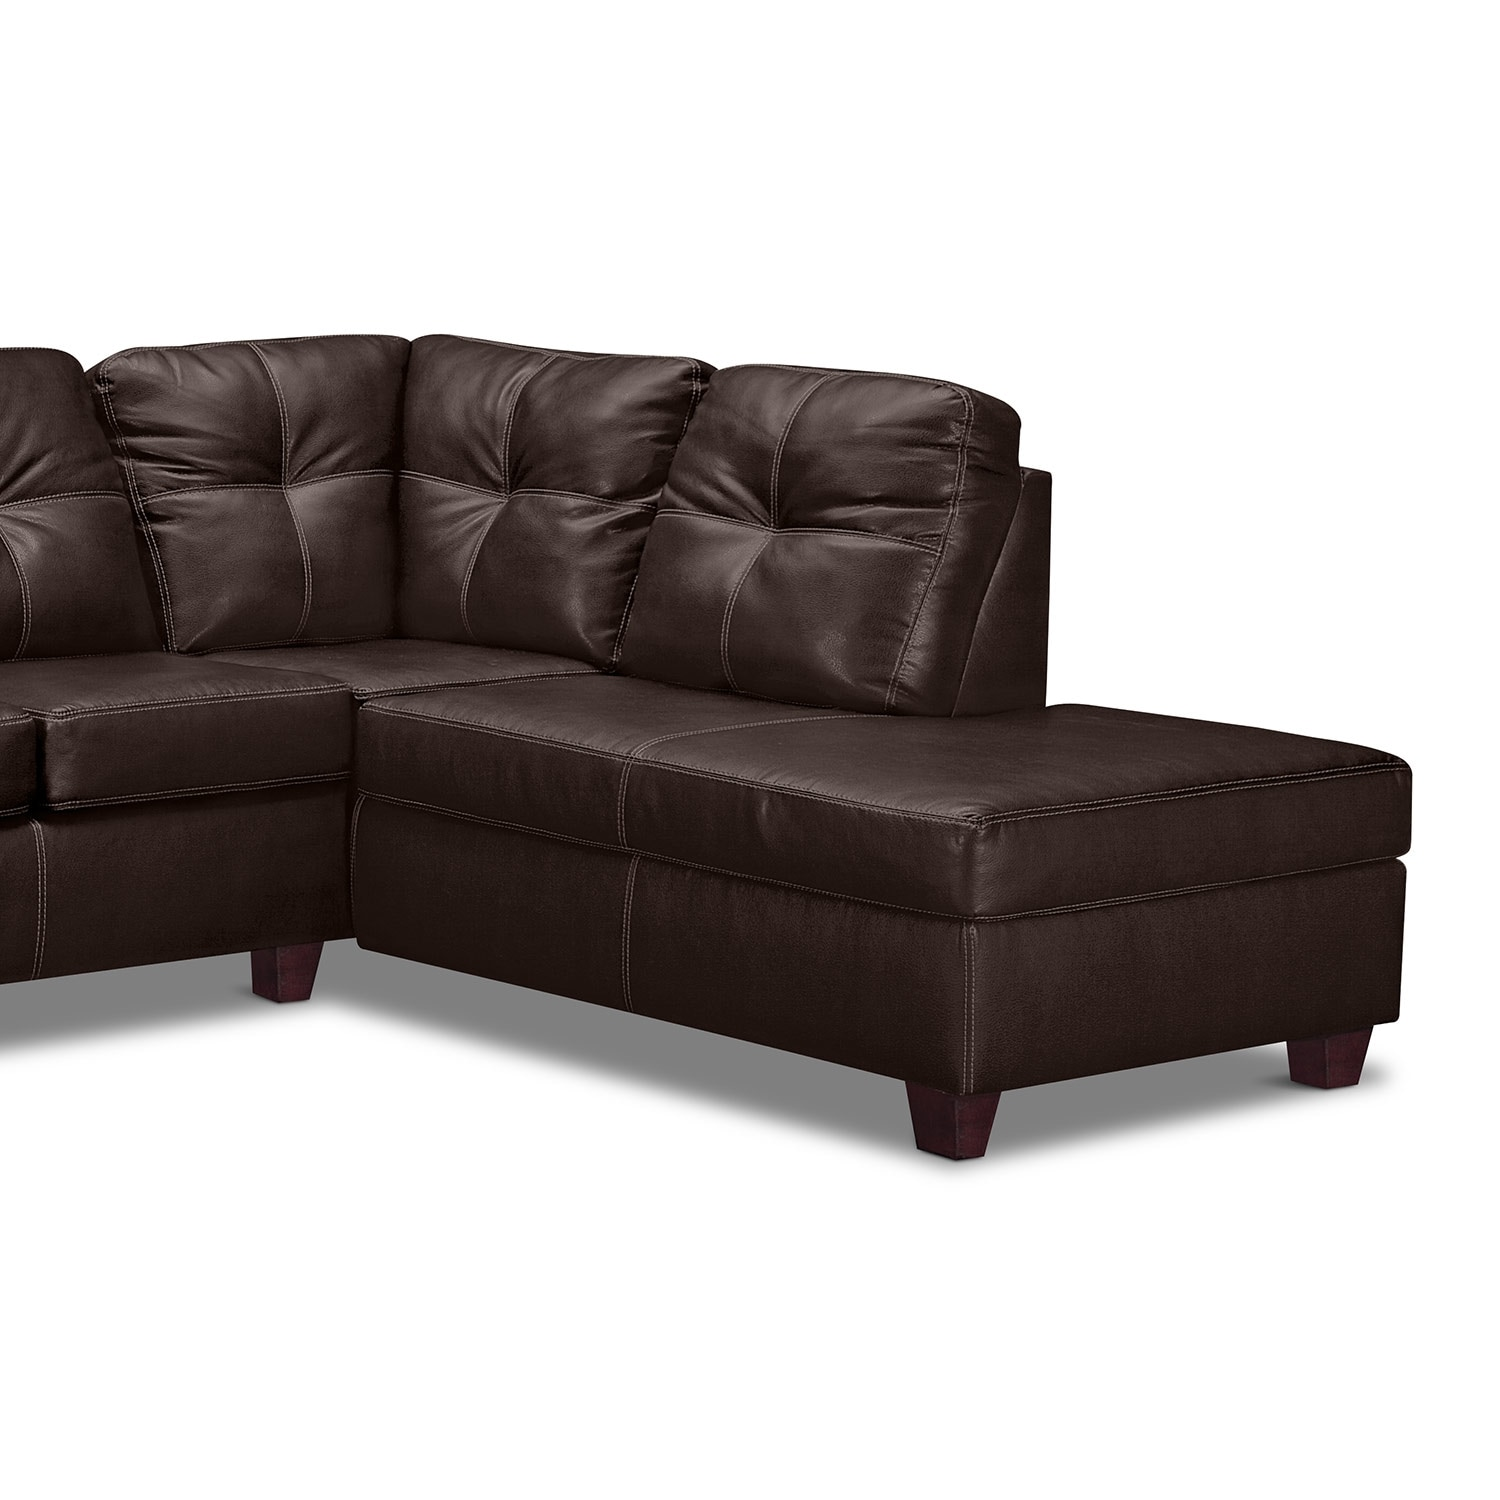 back of sofa facing fireplace scandinavian corner uk ricardo 2 piece sectional with right chaise brown